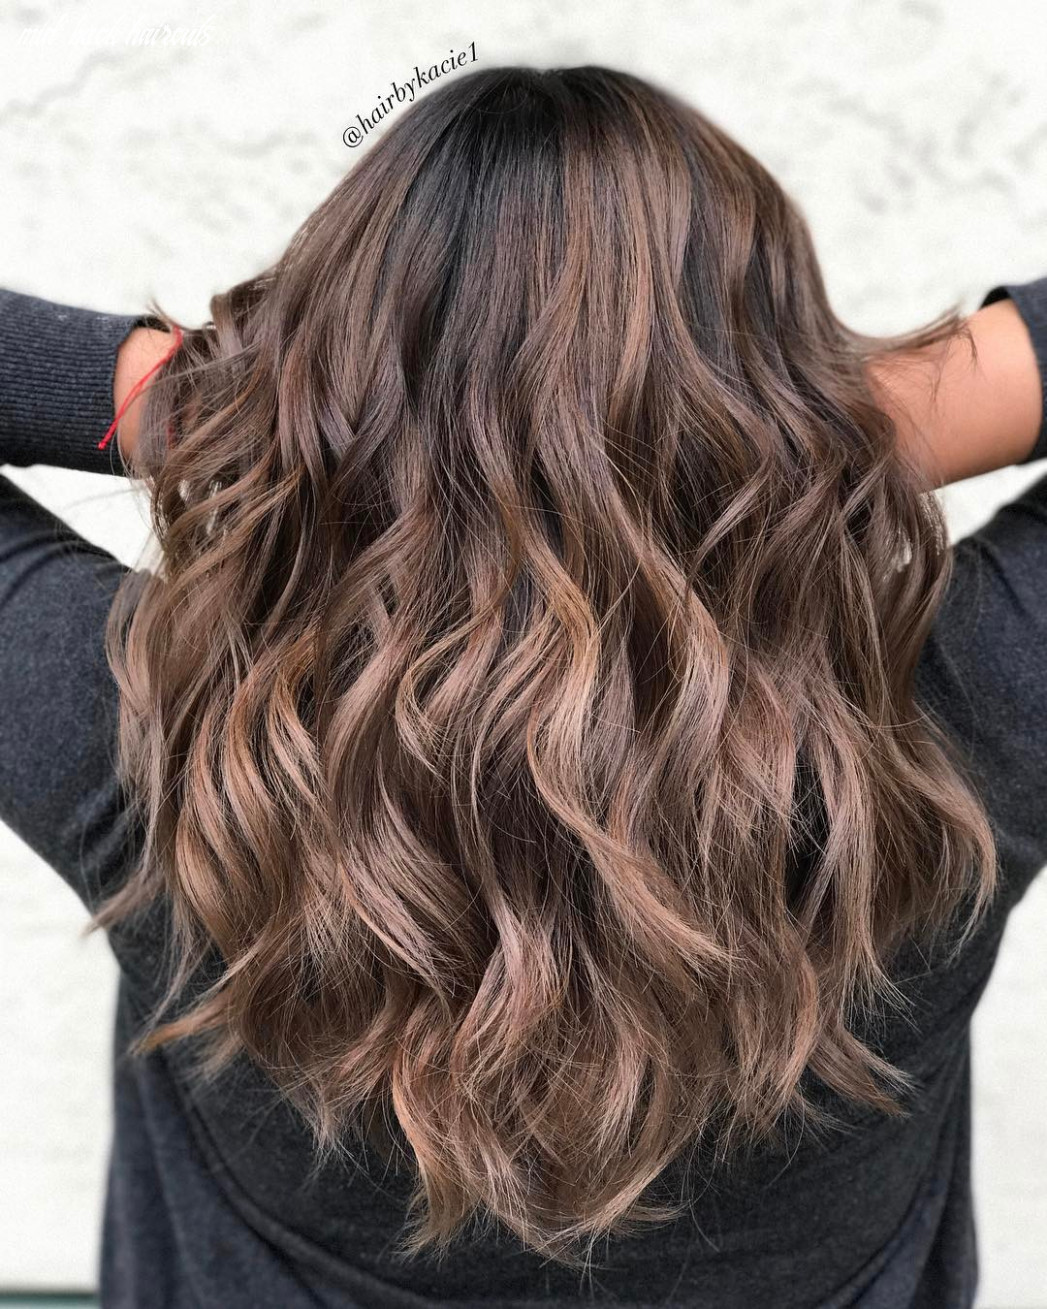 10 new long hairstyles with layers for 10 hair adviser mid back haircuts